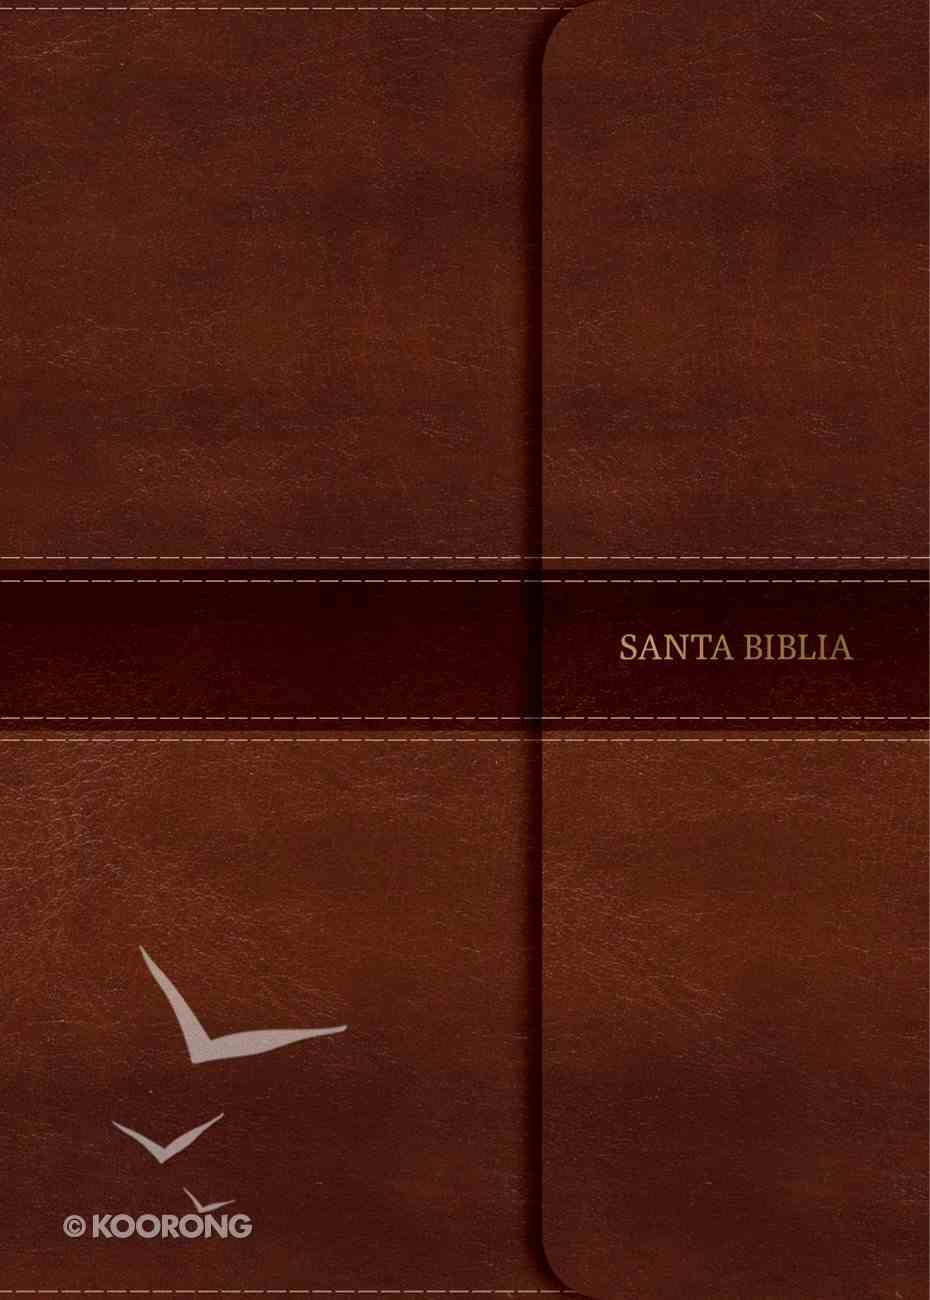 Rvr 1960 Biblia Letra Grande Tamano Manual Marron Solapa Con Iman (Red Letter Edition) (Giant Print Magnetic Flap) Imitation Leather